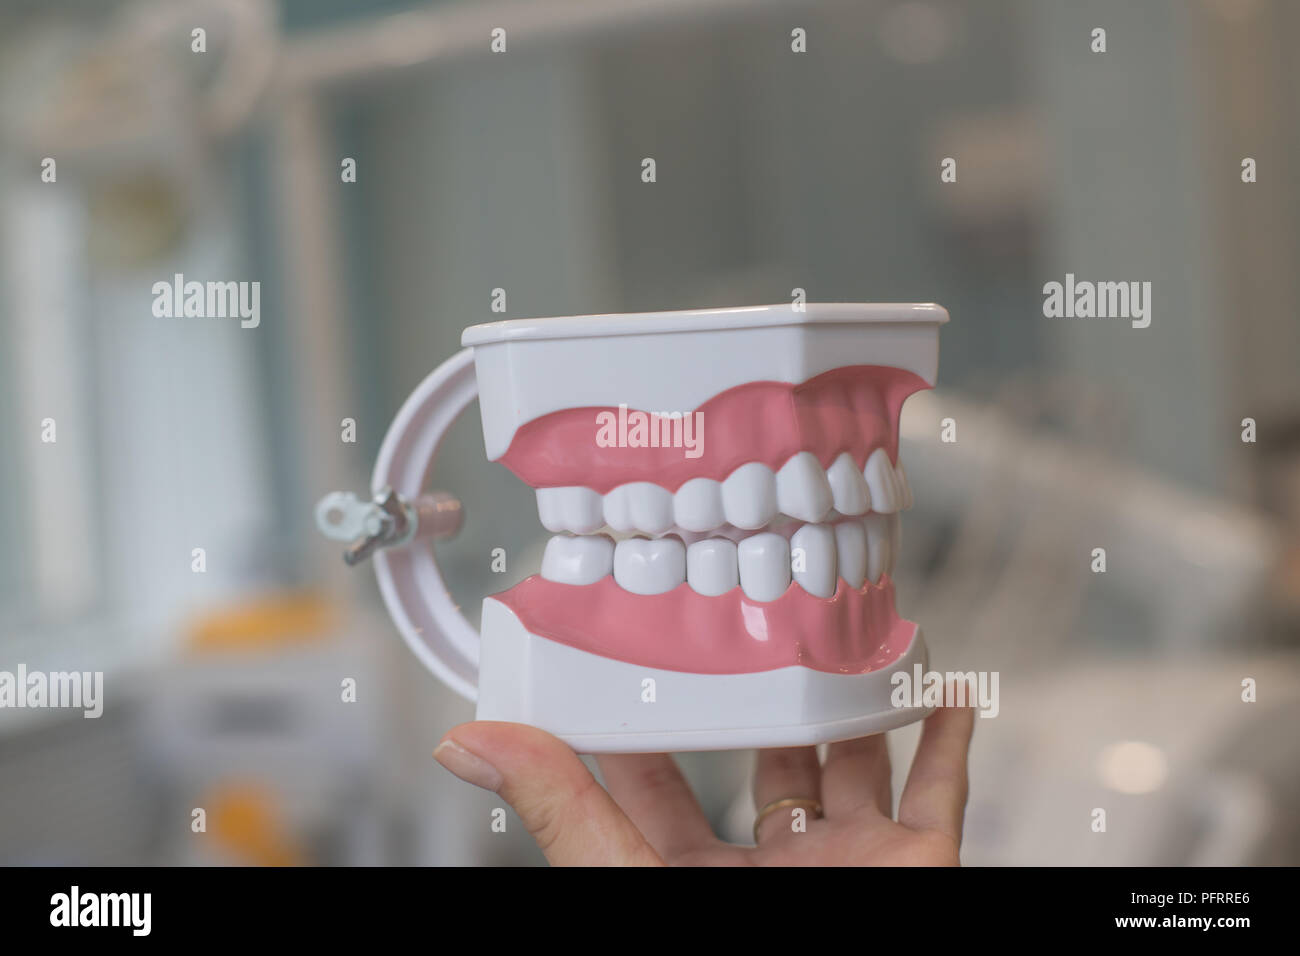 Perfectly straight teeth. Jaw model, close up. Braces on the teeth.teeth model dentures, Stomatology appointment.dental hygienist checkup concept with dentist,teeth model dentures. Regular checkups are essential to oral health - Stock Image